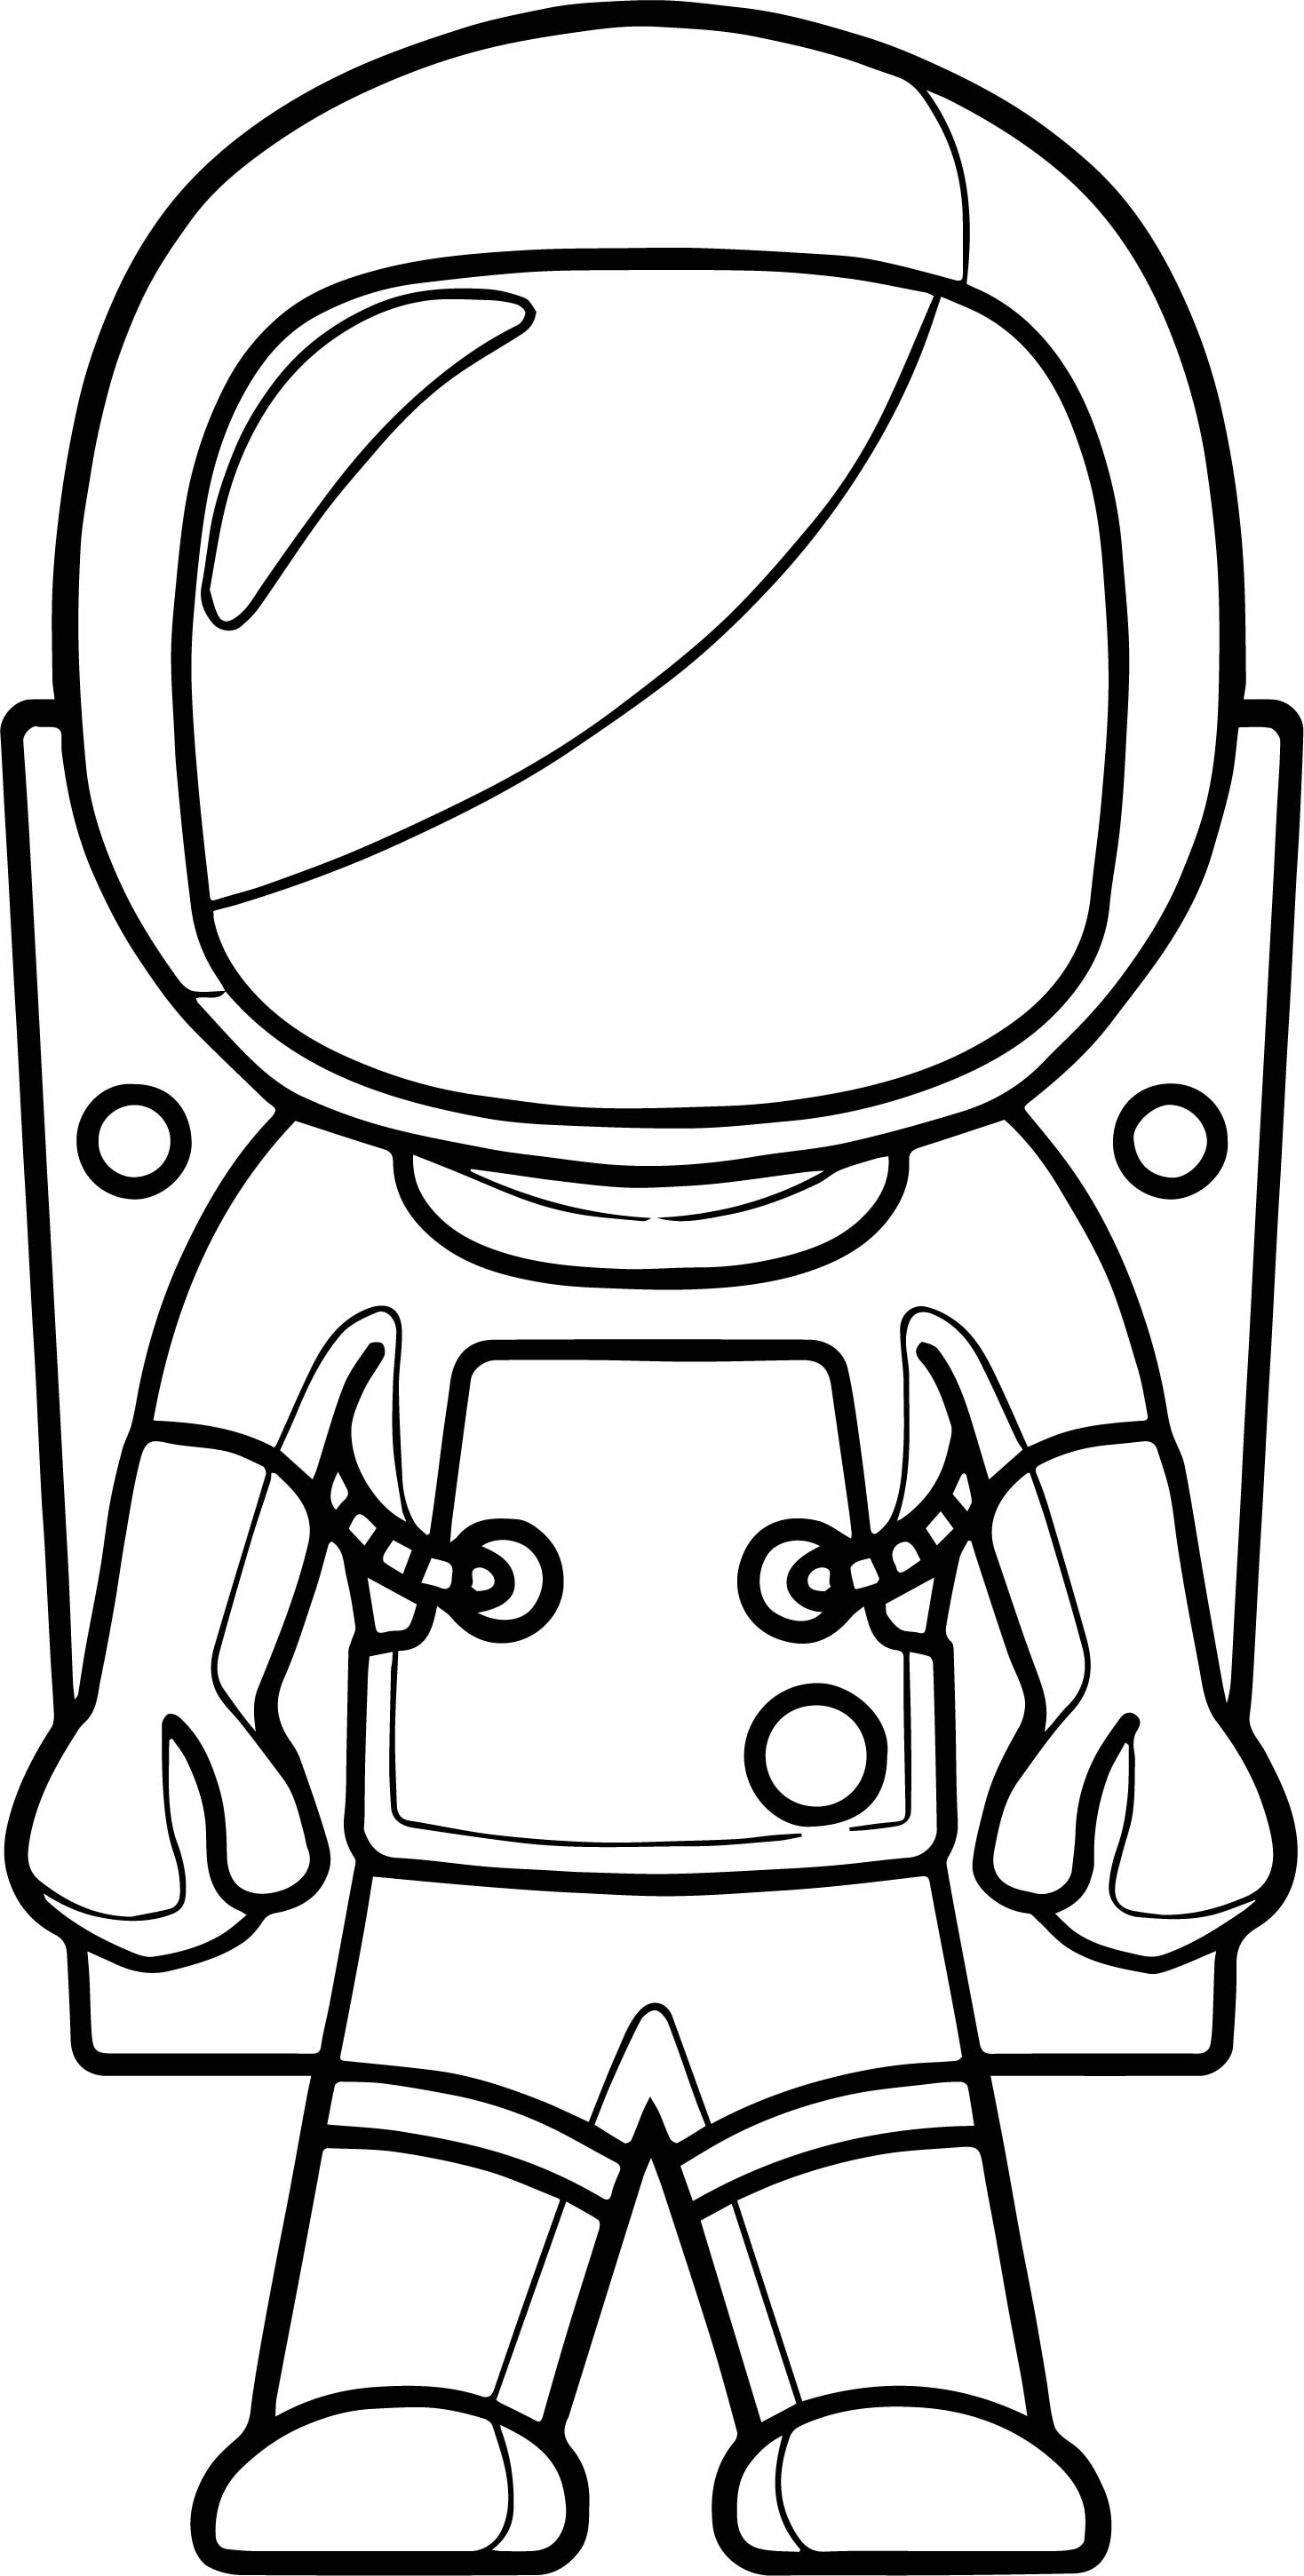 astronaut coloring sheet astronaut front view coloring page wecoloringpagecom sheet coloring astronaut